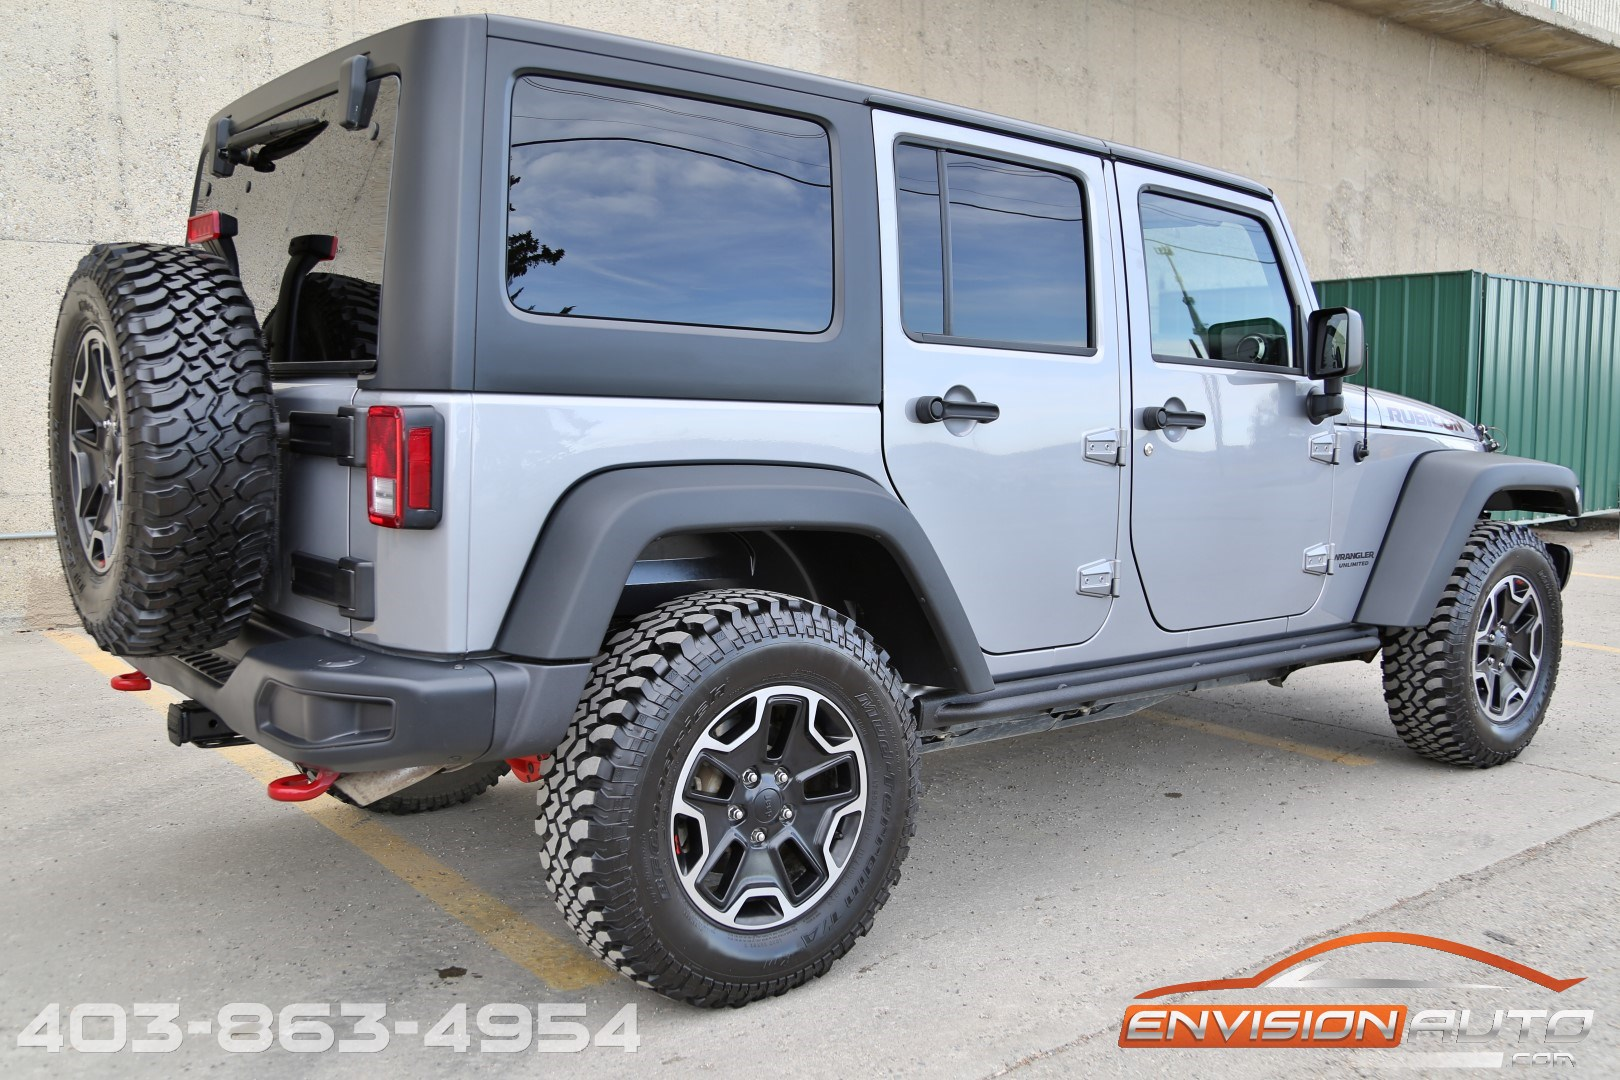 2015 jeep wrangler unlimited rubicon 4 4 hard rock edition envision auto calgary highline. Black Bedroom Furniture Sets. Home Design Ideas